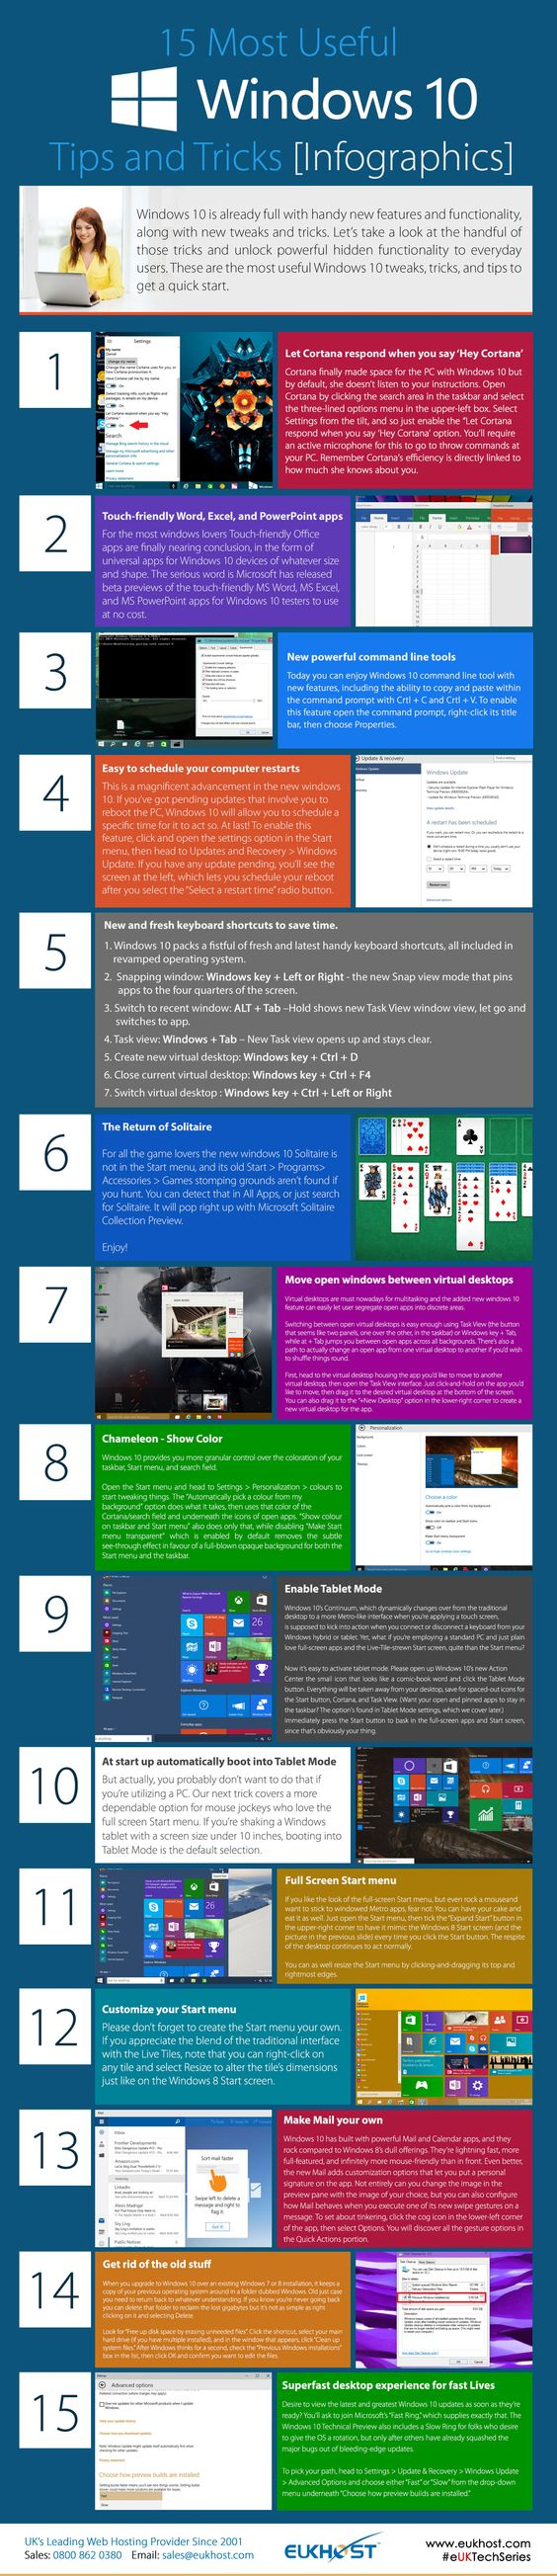 15 Windows 10 Tips and Tricks